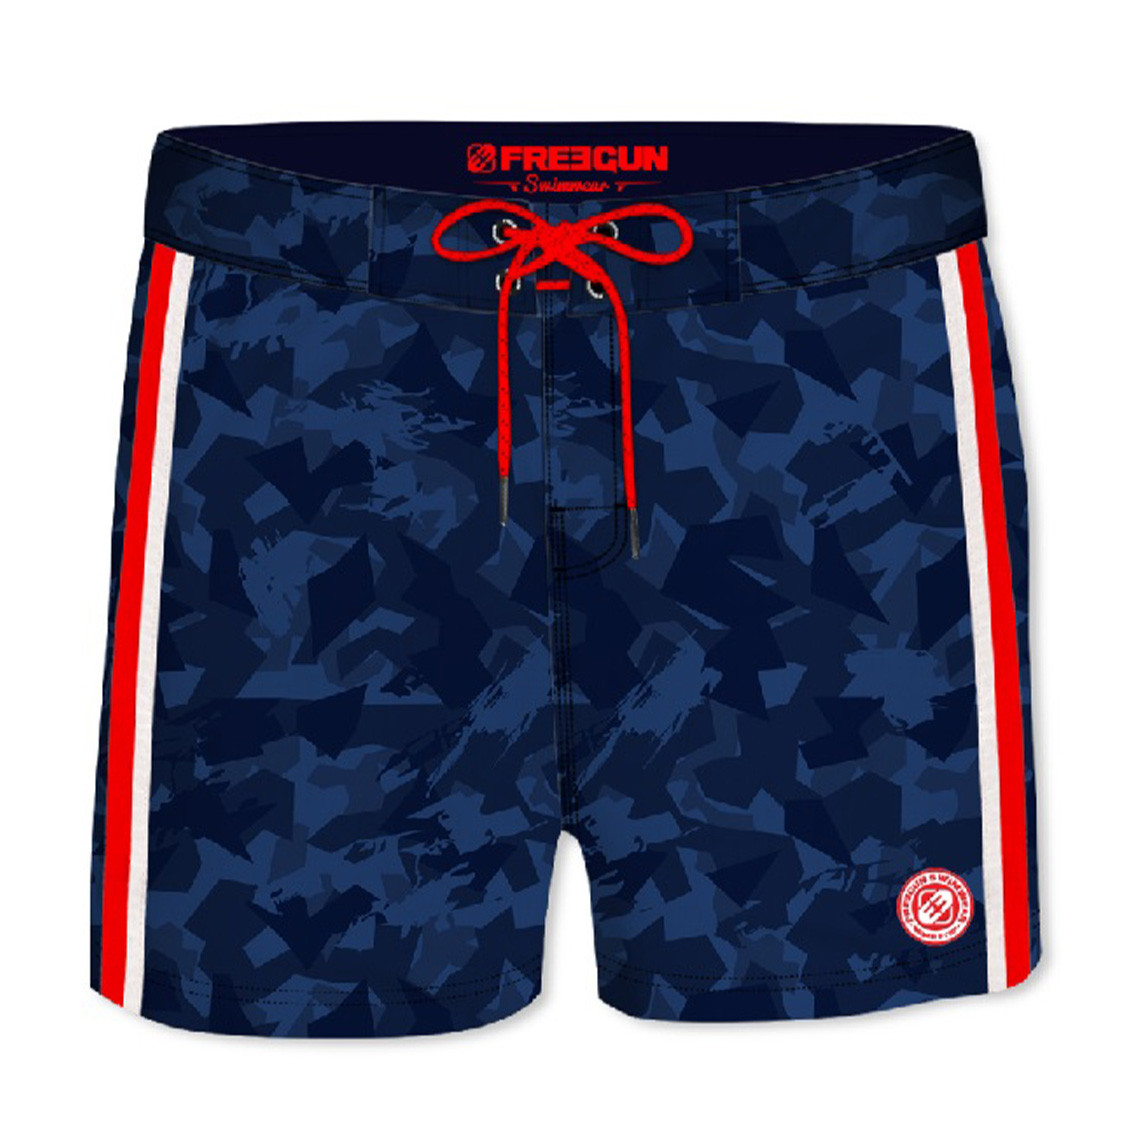 Boardshort court homme freegun camouflage rouge (photo)